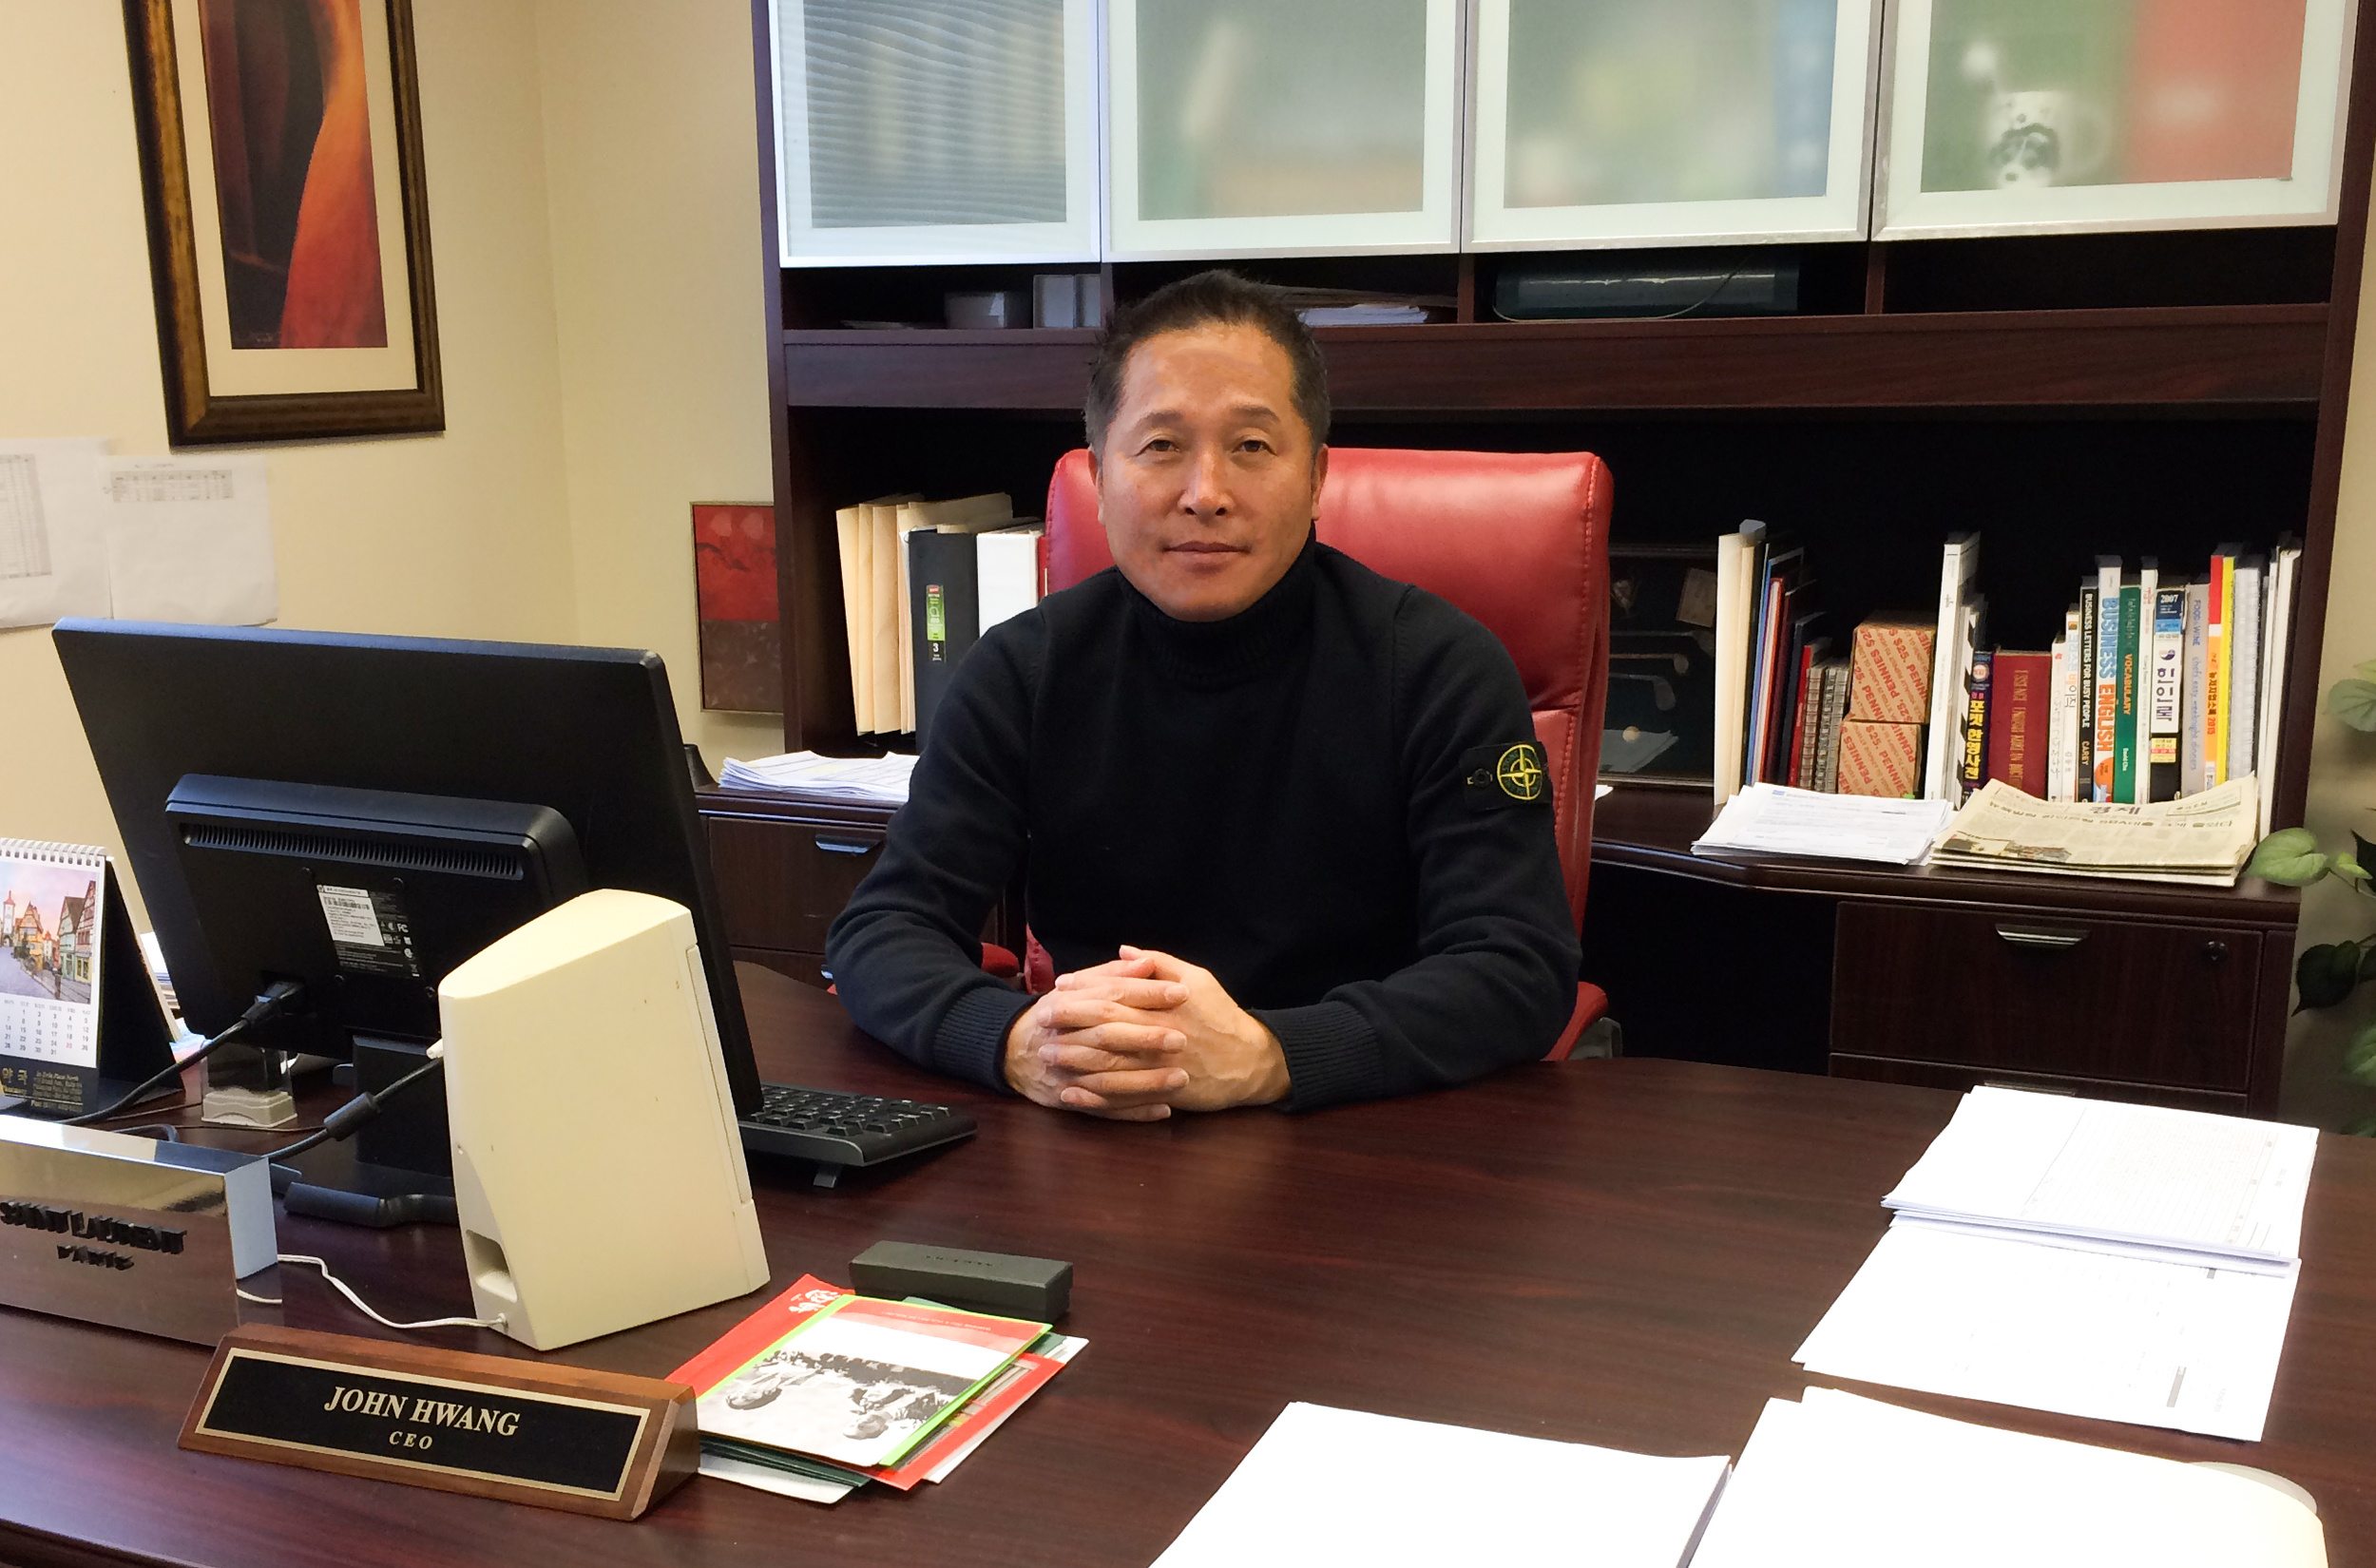 John Hwang in Main Office